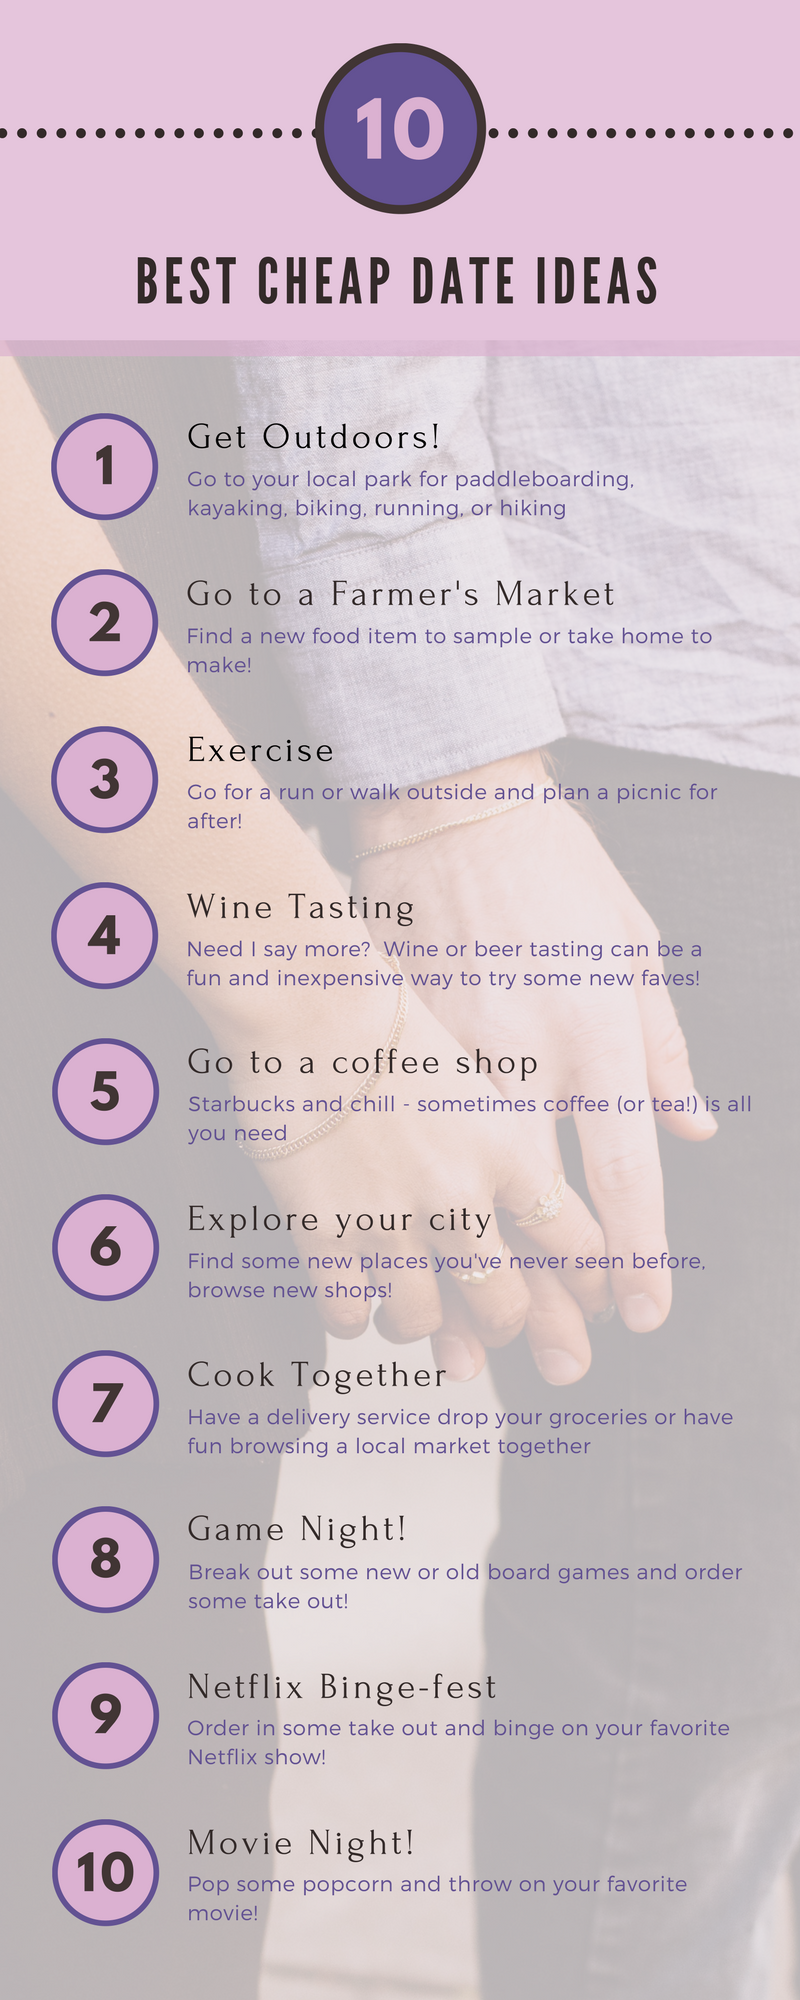 10 Cheap Date Ideas for Couples on a Budget | Craft